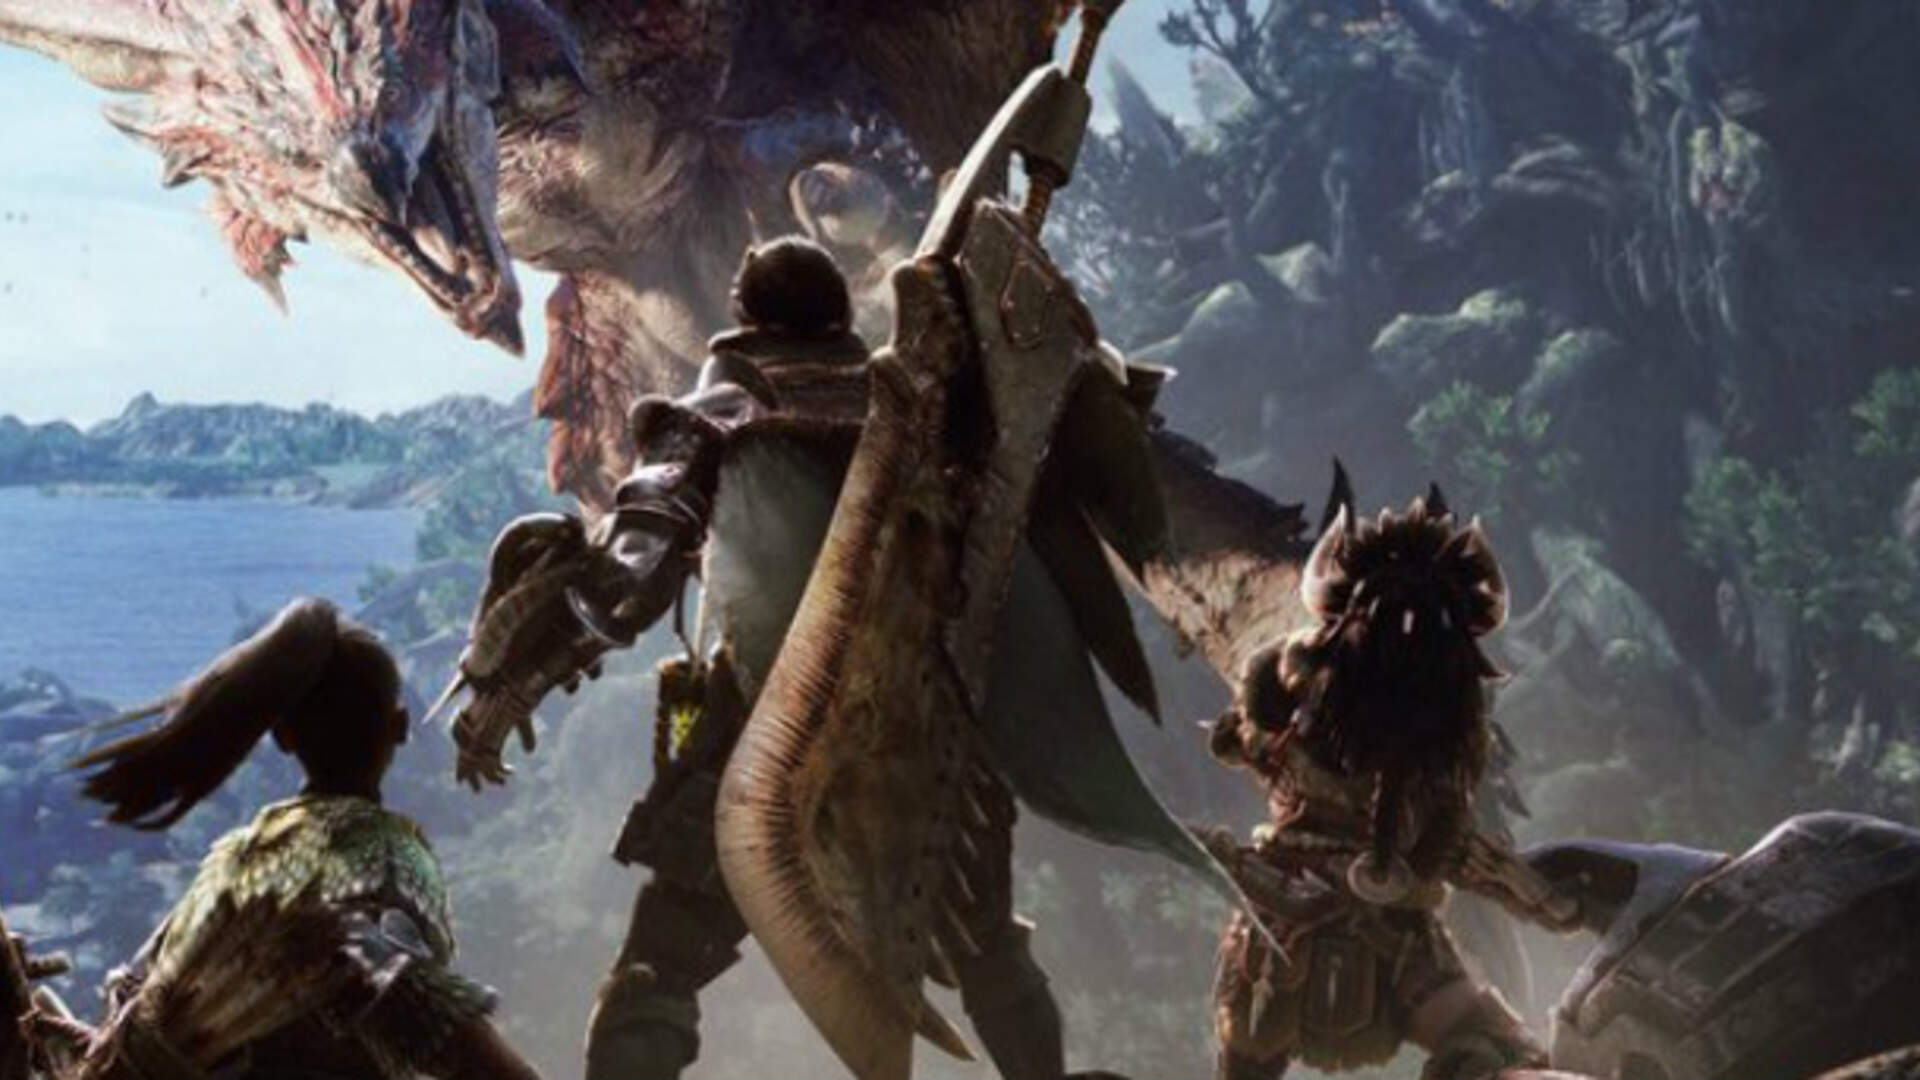 Capcom Might Consider a Character Creator Do-Over Feature for Monster Hunter: World if There's Fan Demand